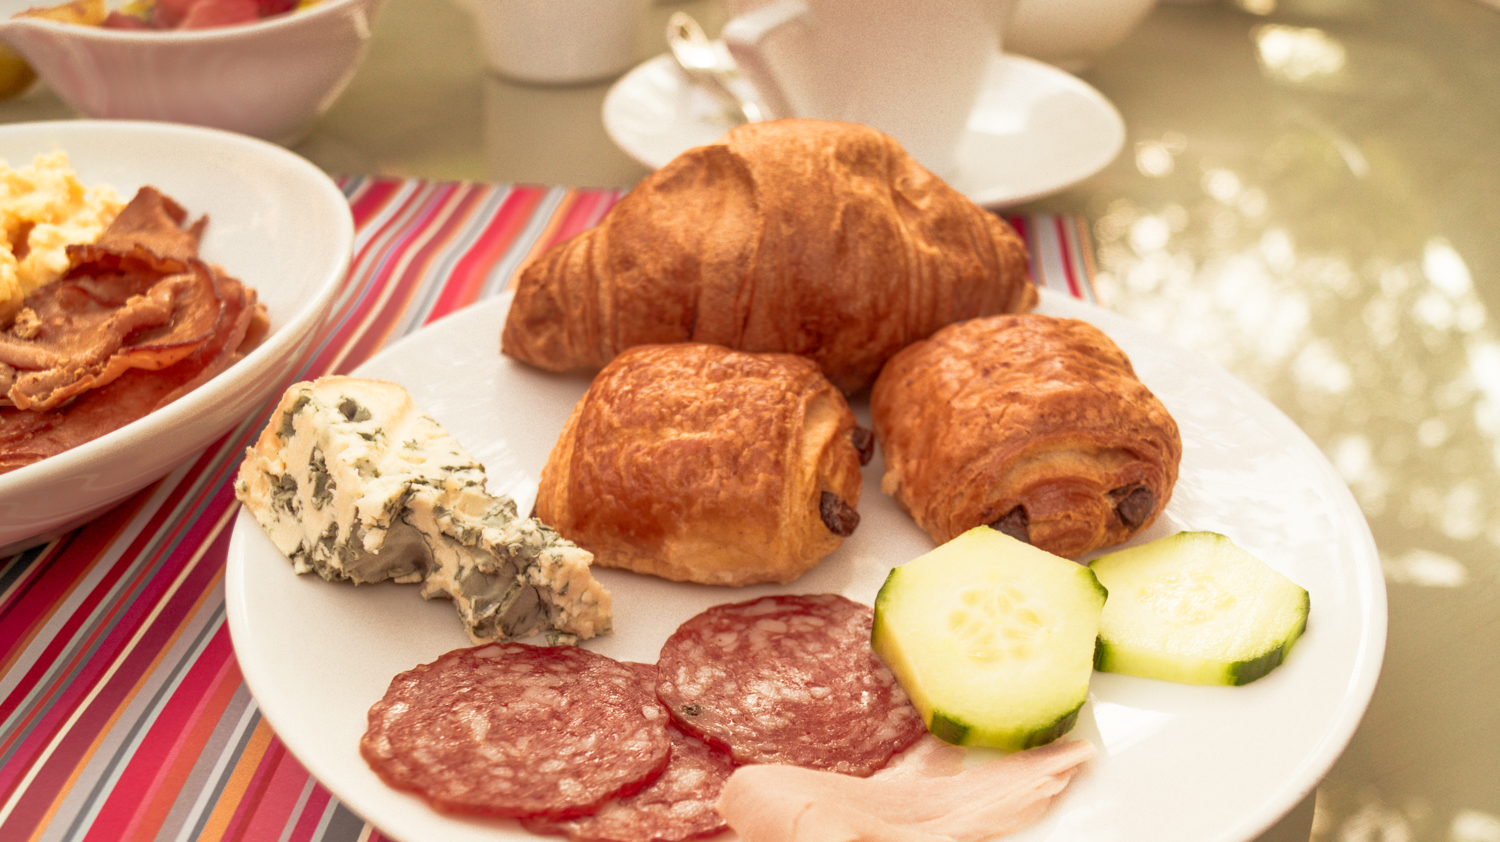 A small selection of breakfast offerings at the Hotel La Perouse buffet